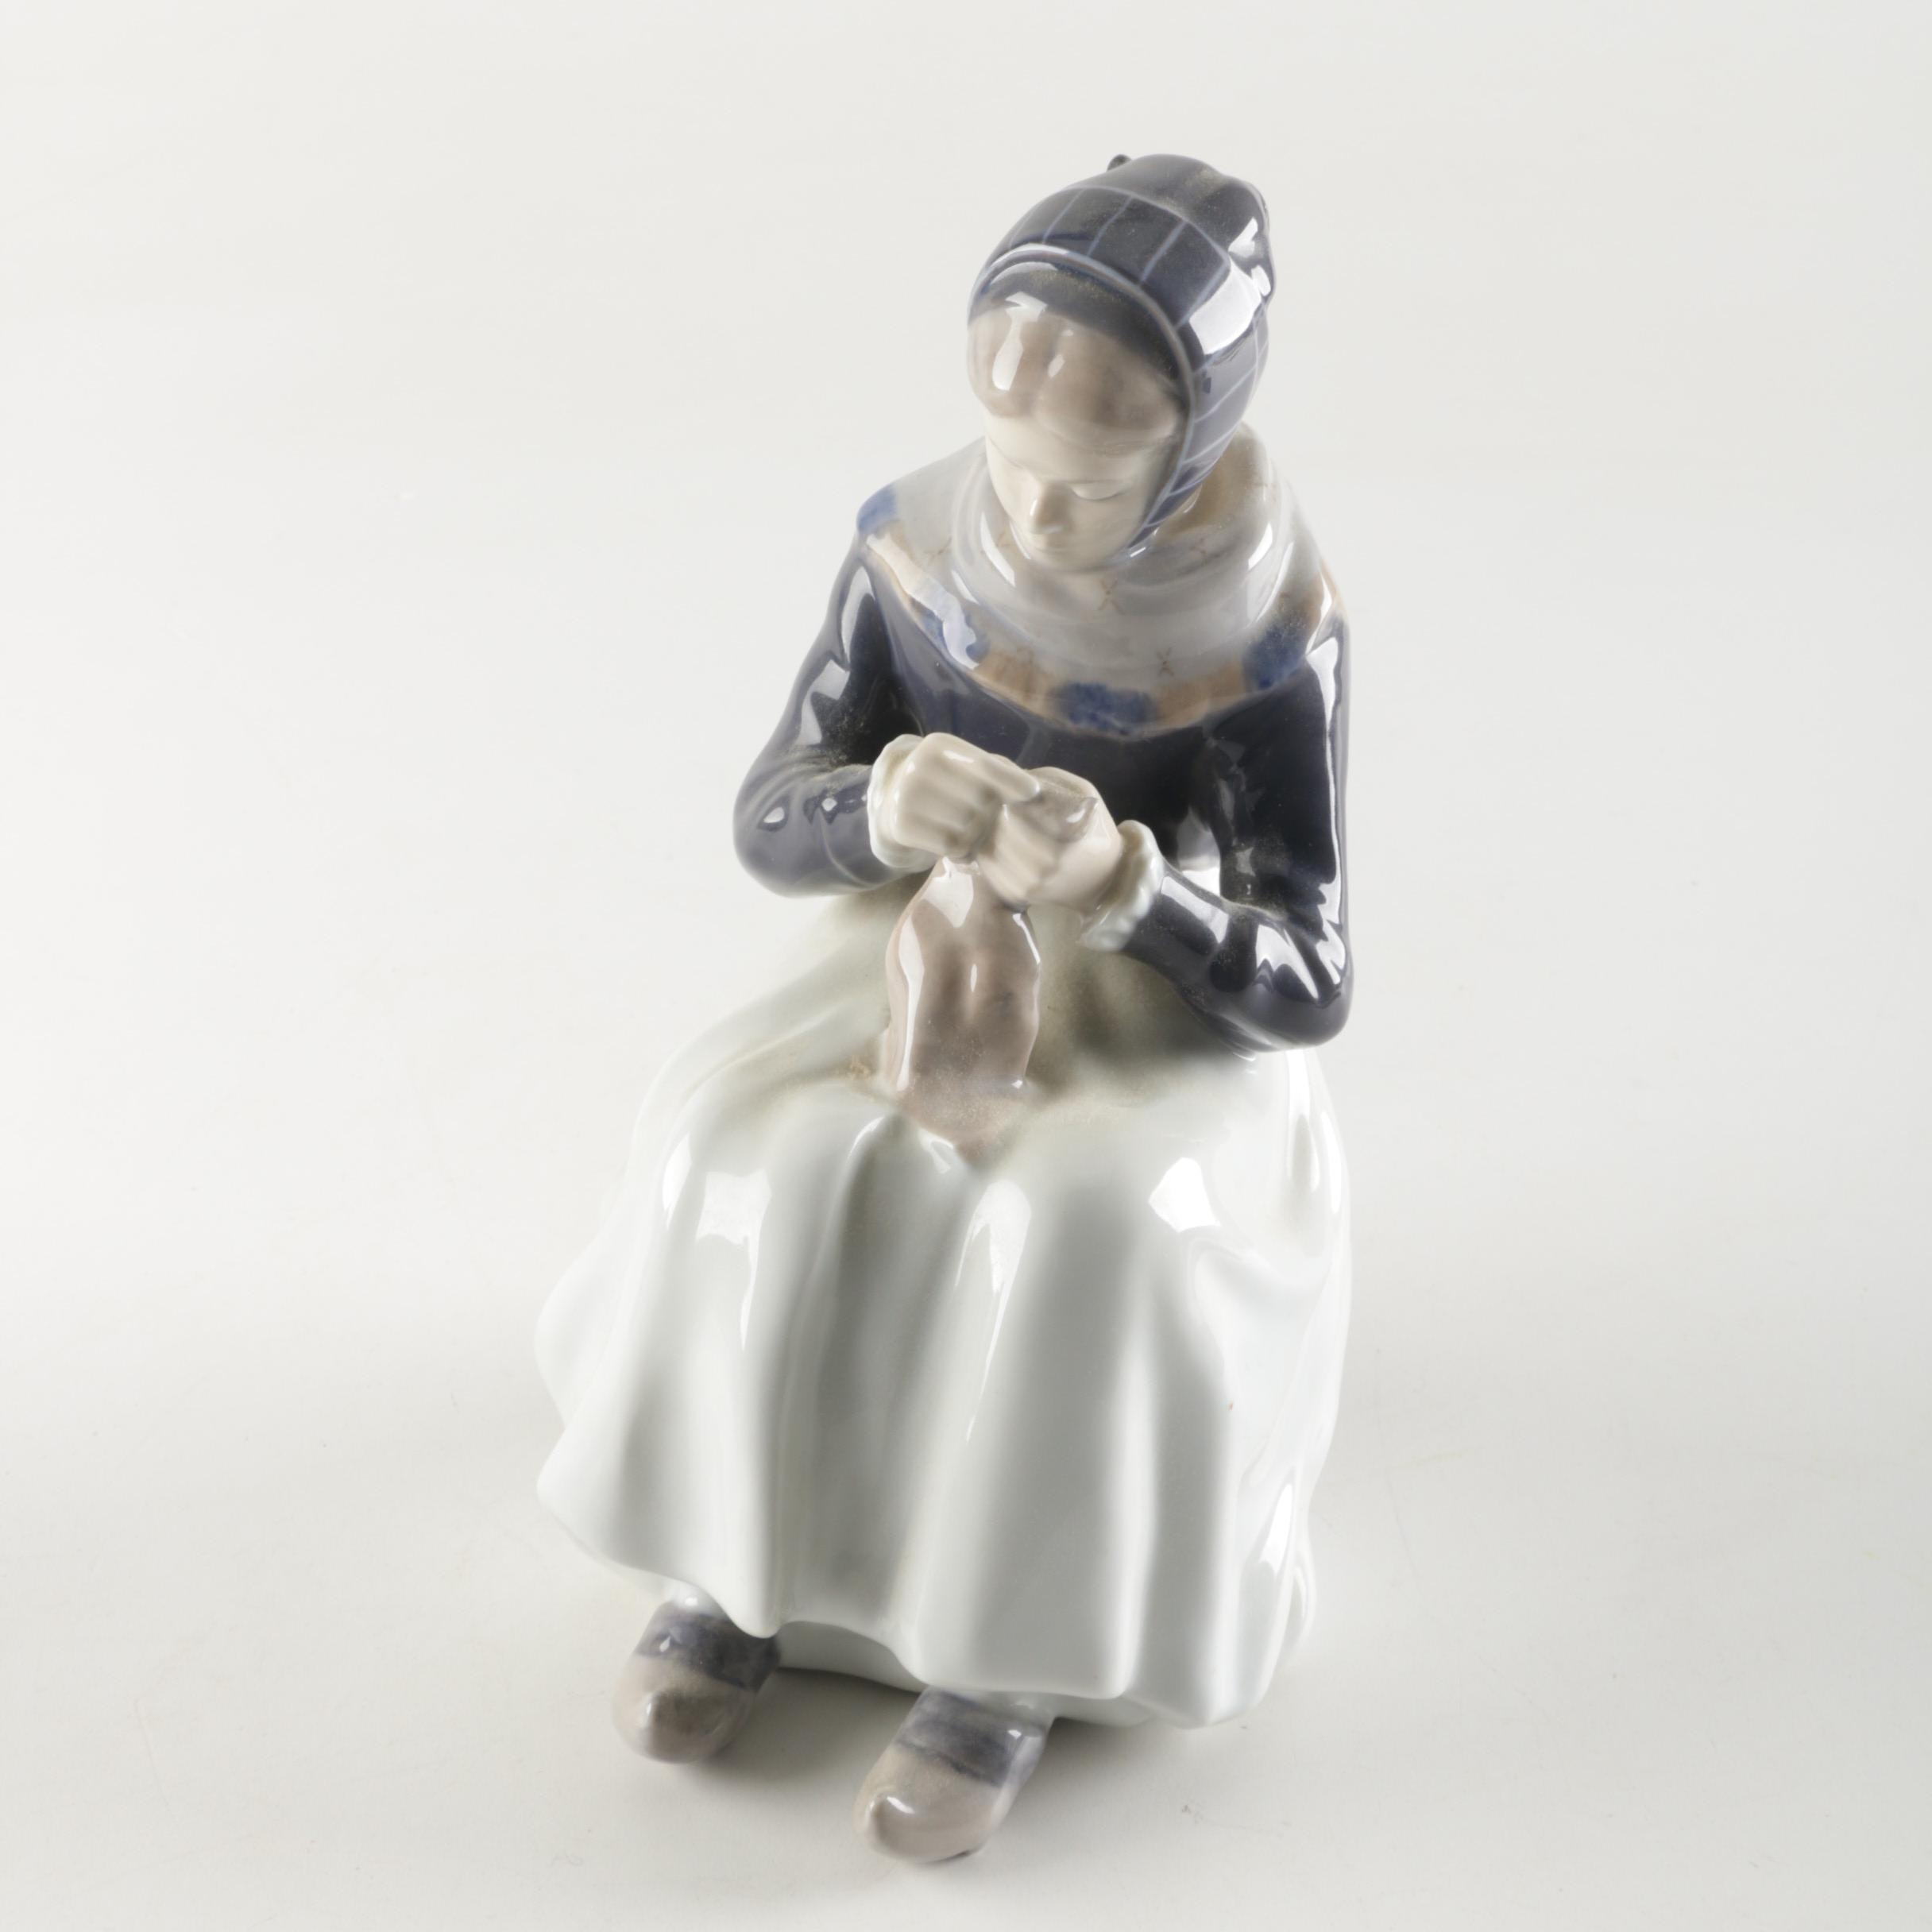 Royal Copenhagen Knitting Woman Porcelain Figurine